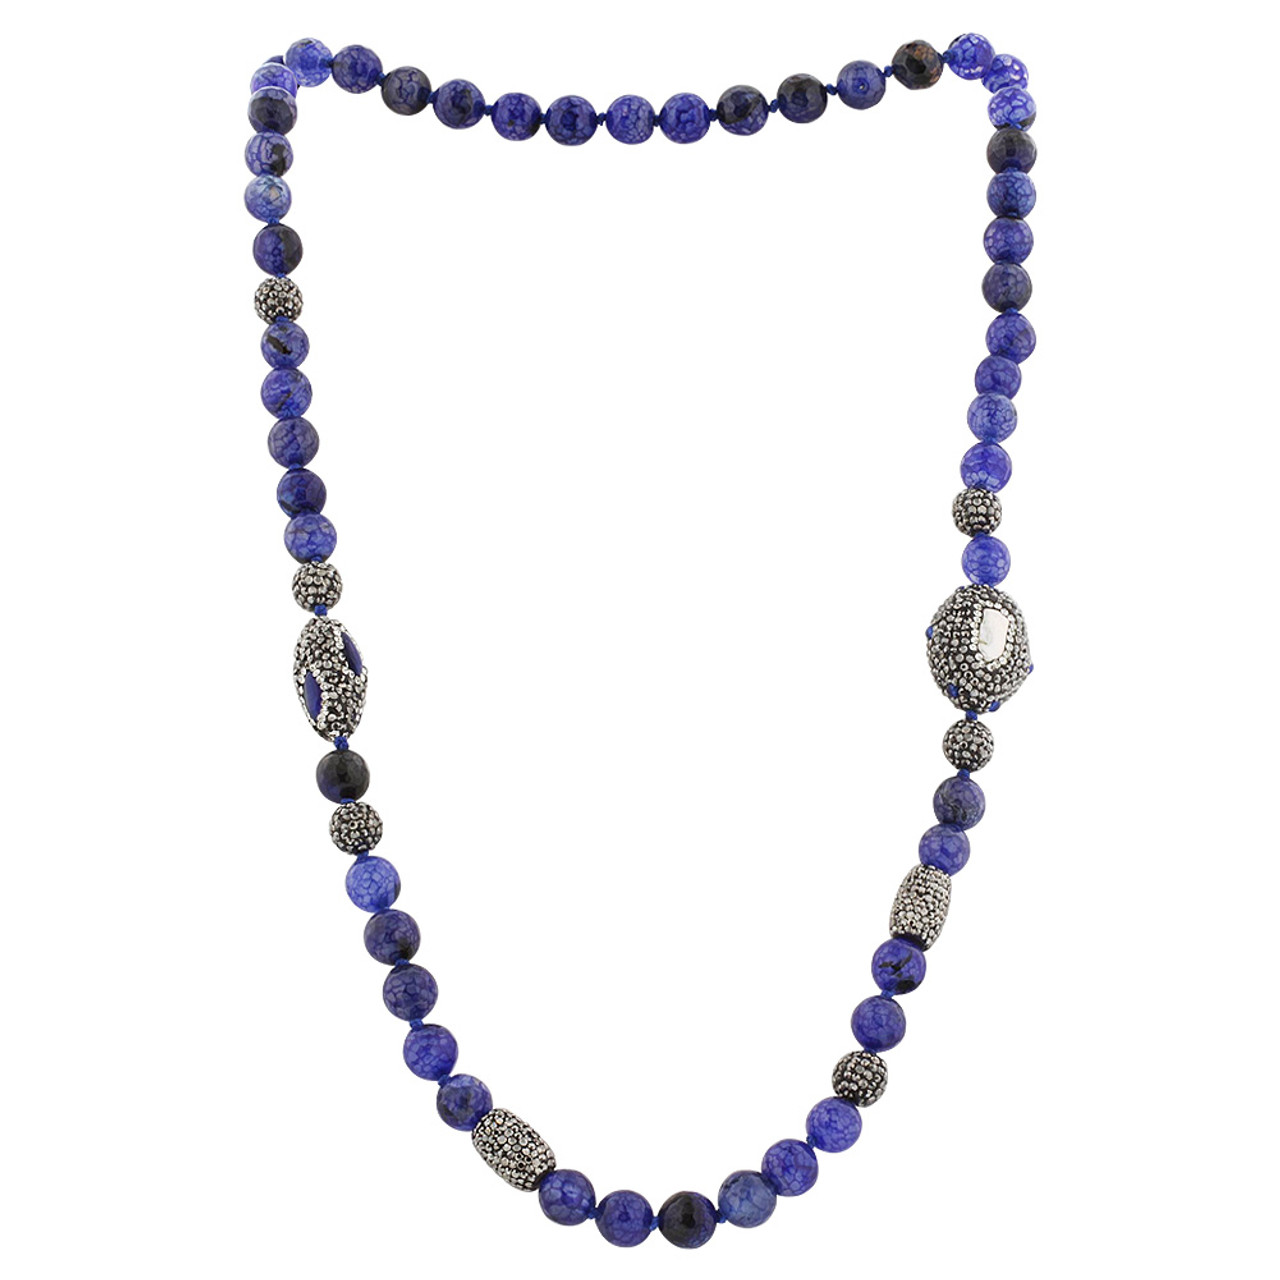 Blue Glass Beads and Freshwater Pearl Necklace